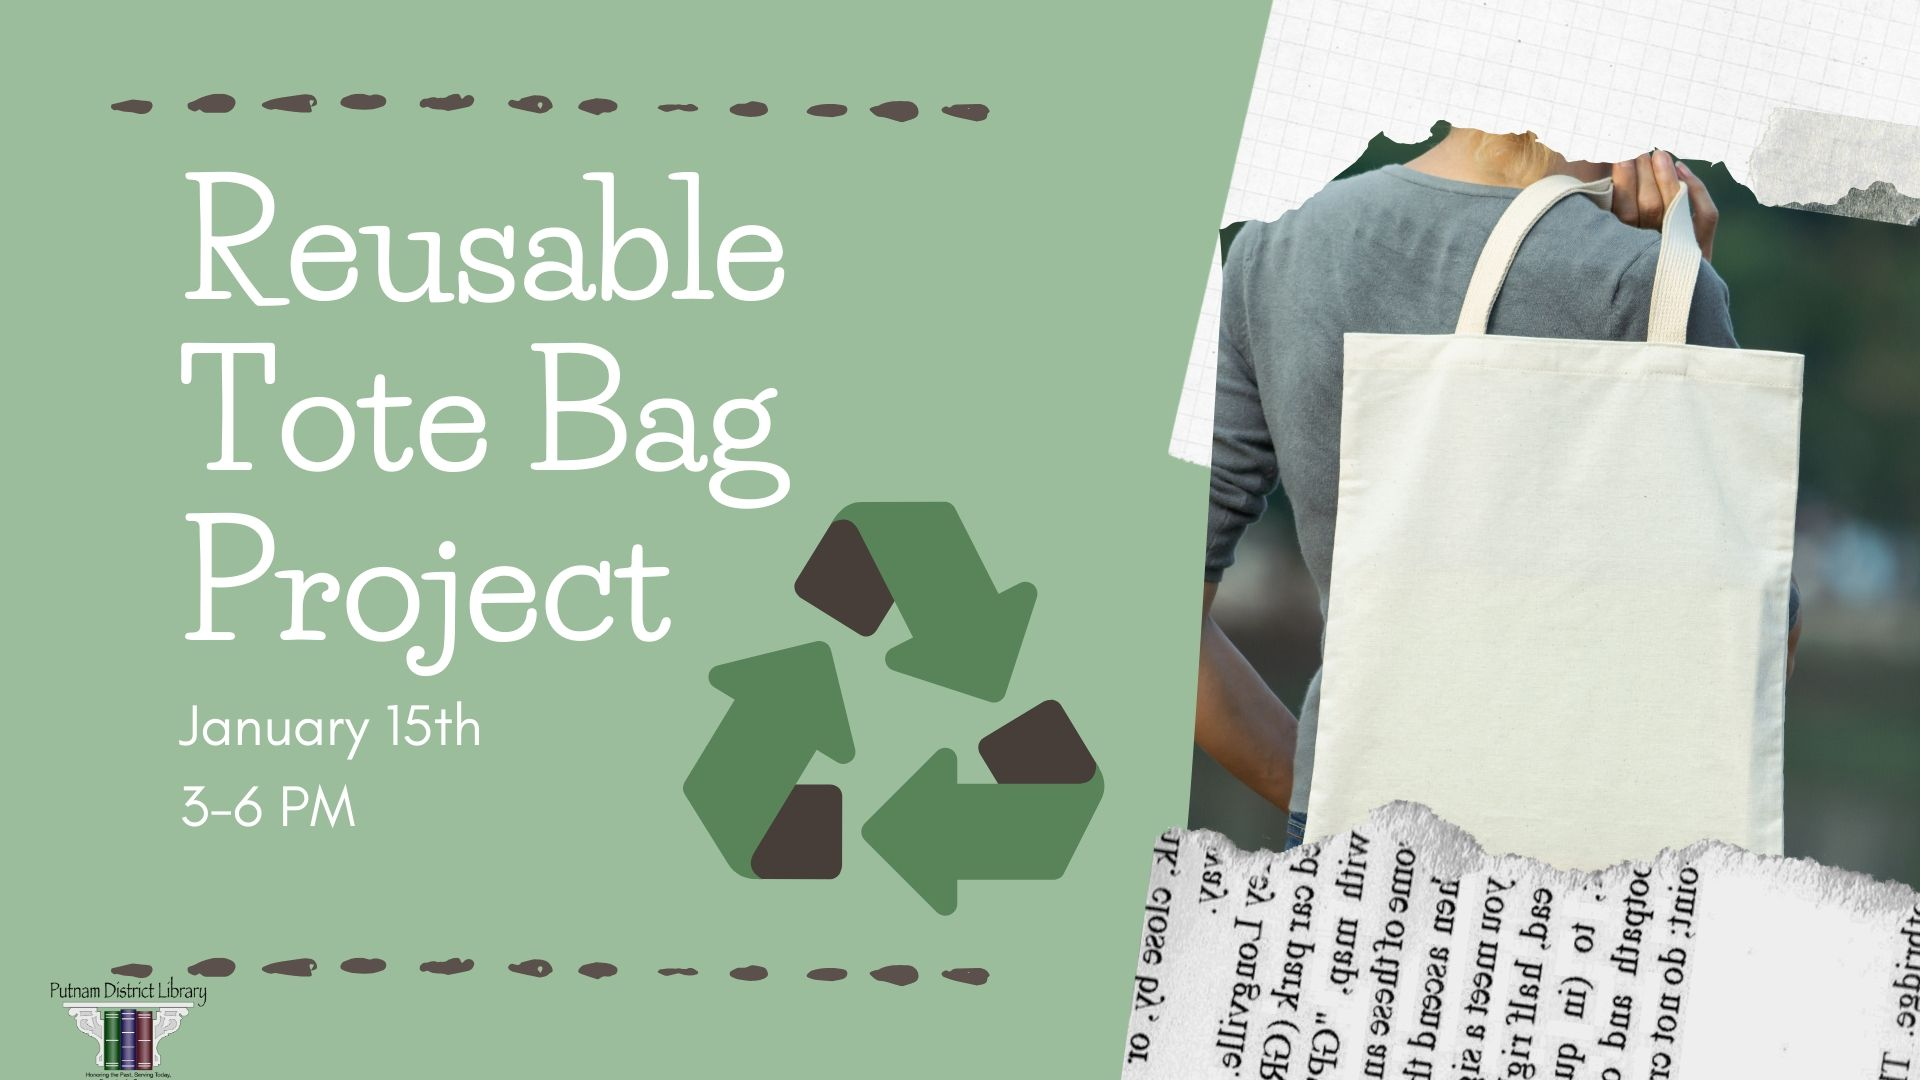 Reusable Tote Bag Project